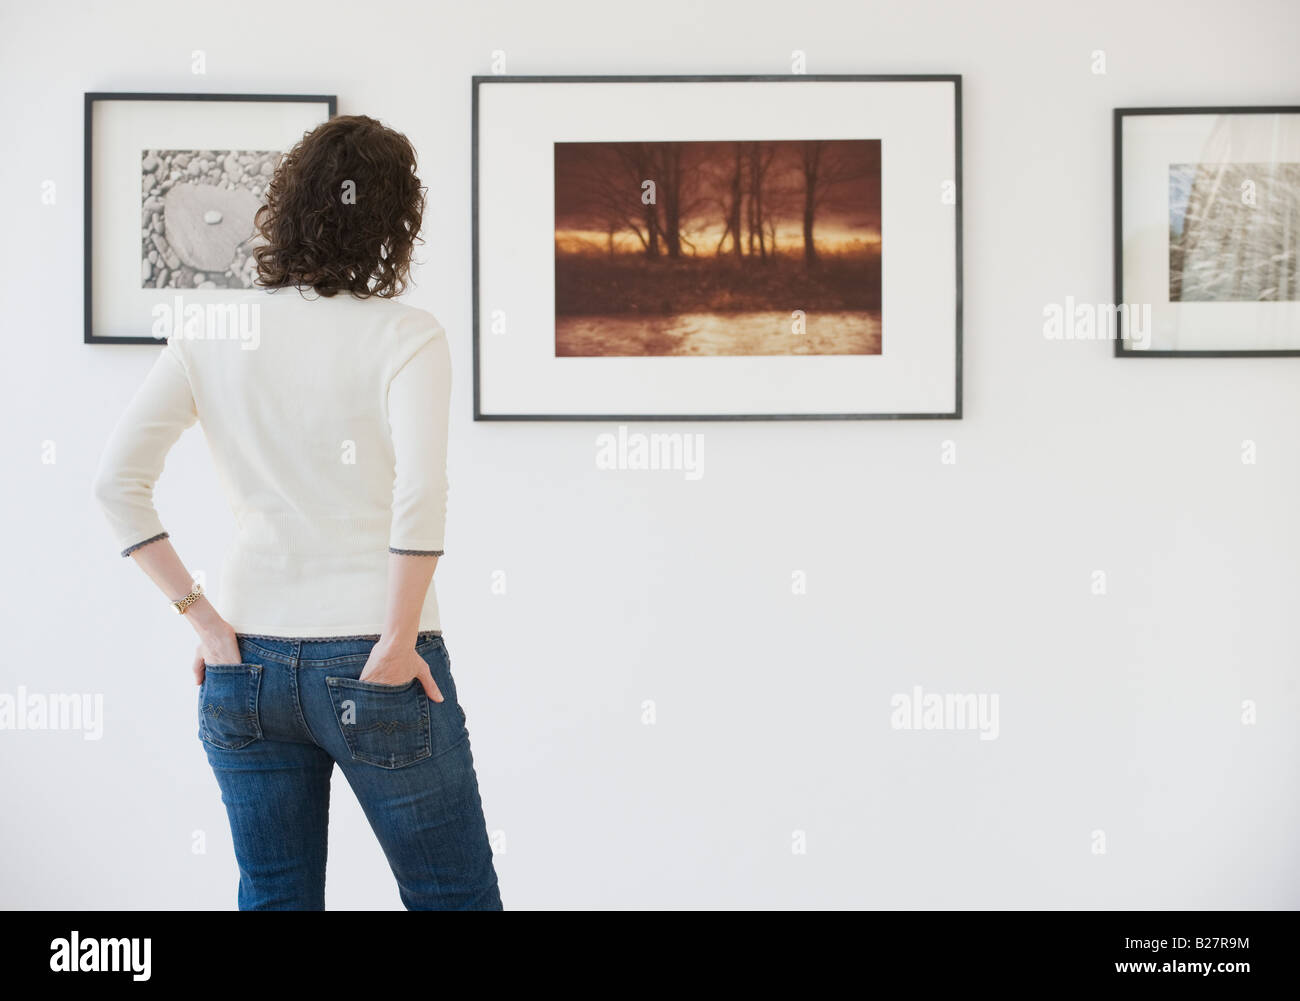 Woman looking at art in art gallery - Stock Image